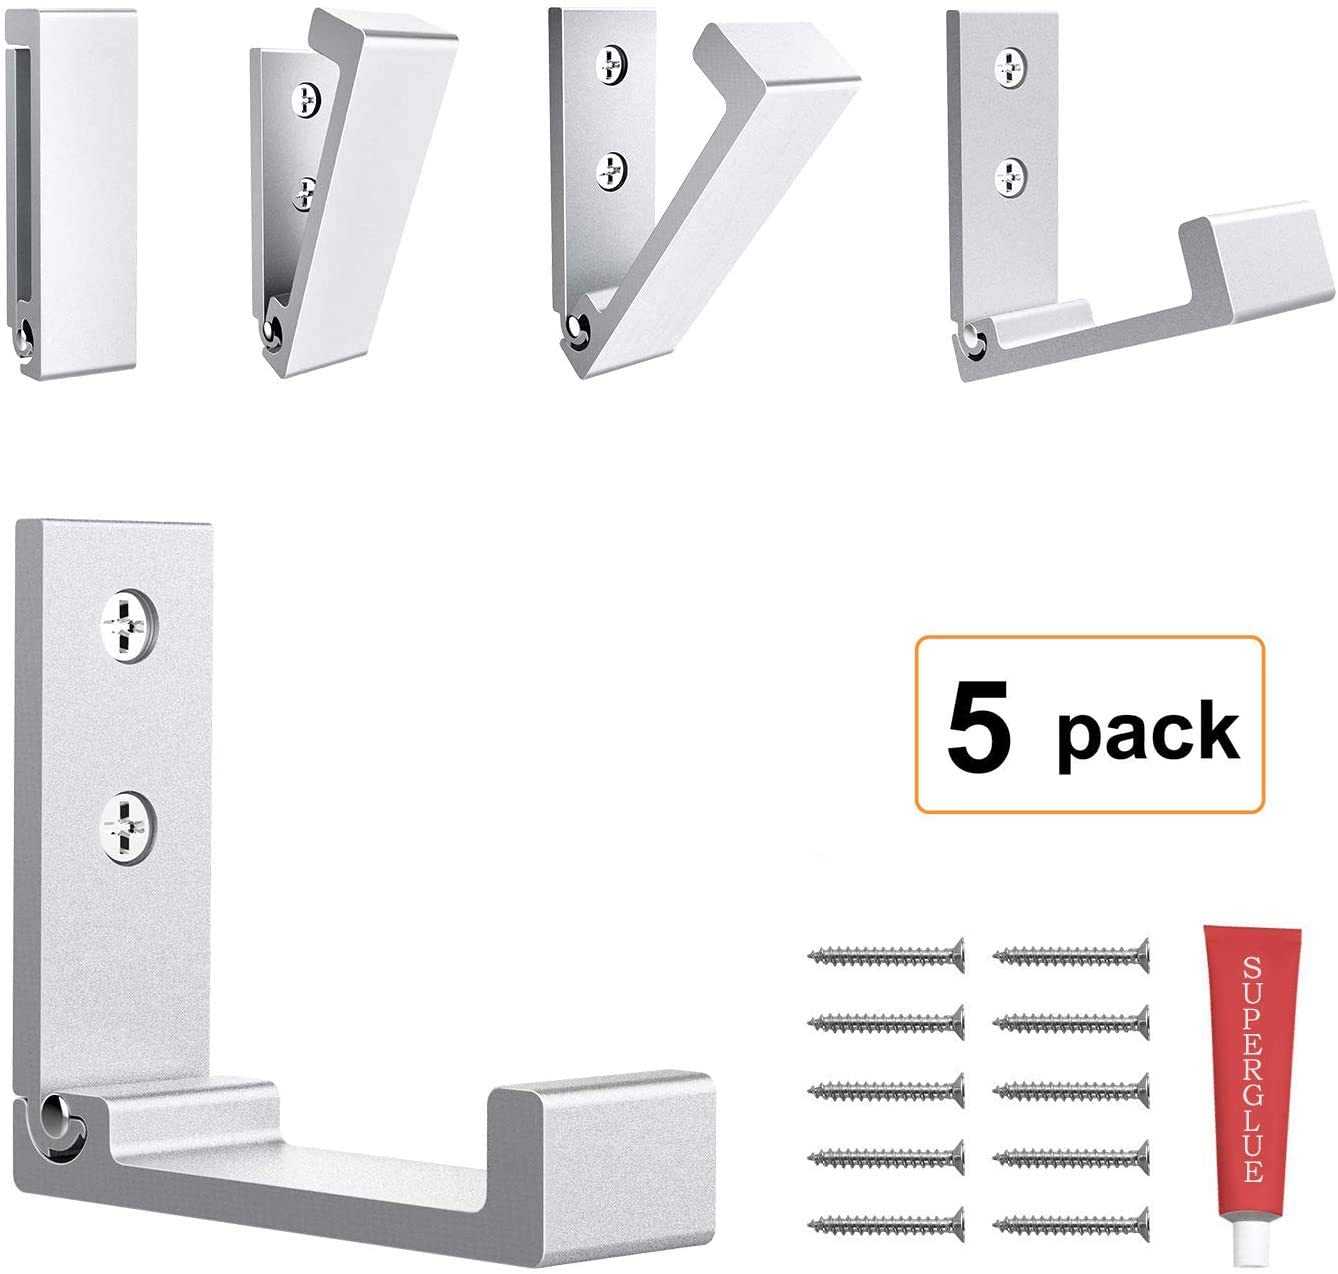 Foldable Adhesive Hooks,Heavy Duty Wall Hooks Zn Cu Alloy Ultra Strong Waterproof Hanger for Robe, Coat, Towel, Keys, Bags, Home, Kitchen, Bathroom with Glue Adhesive .Set of 5 Pack (Silver)